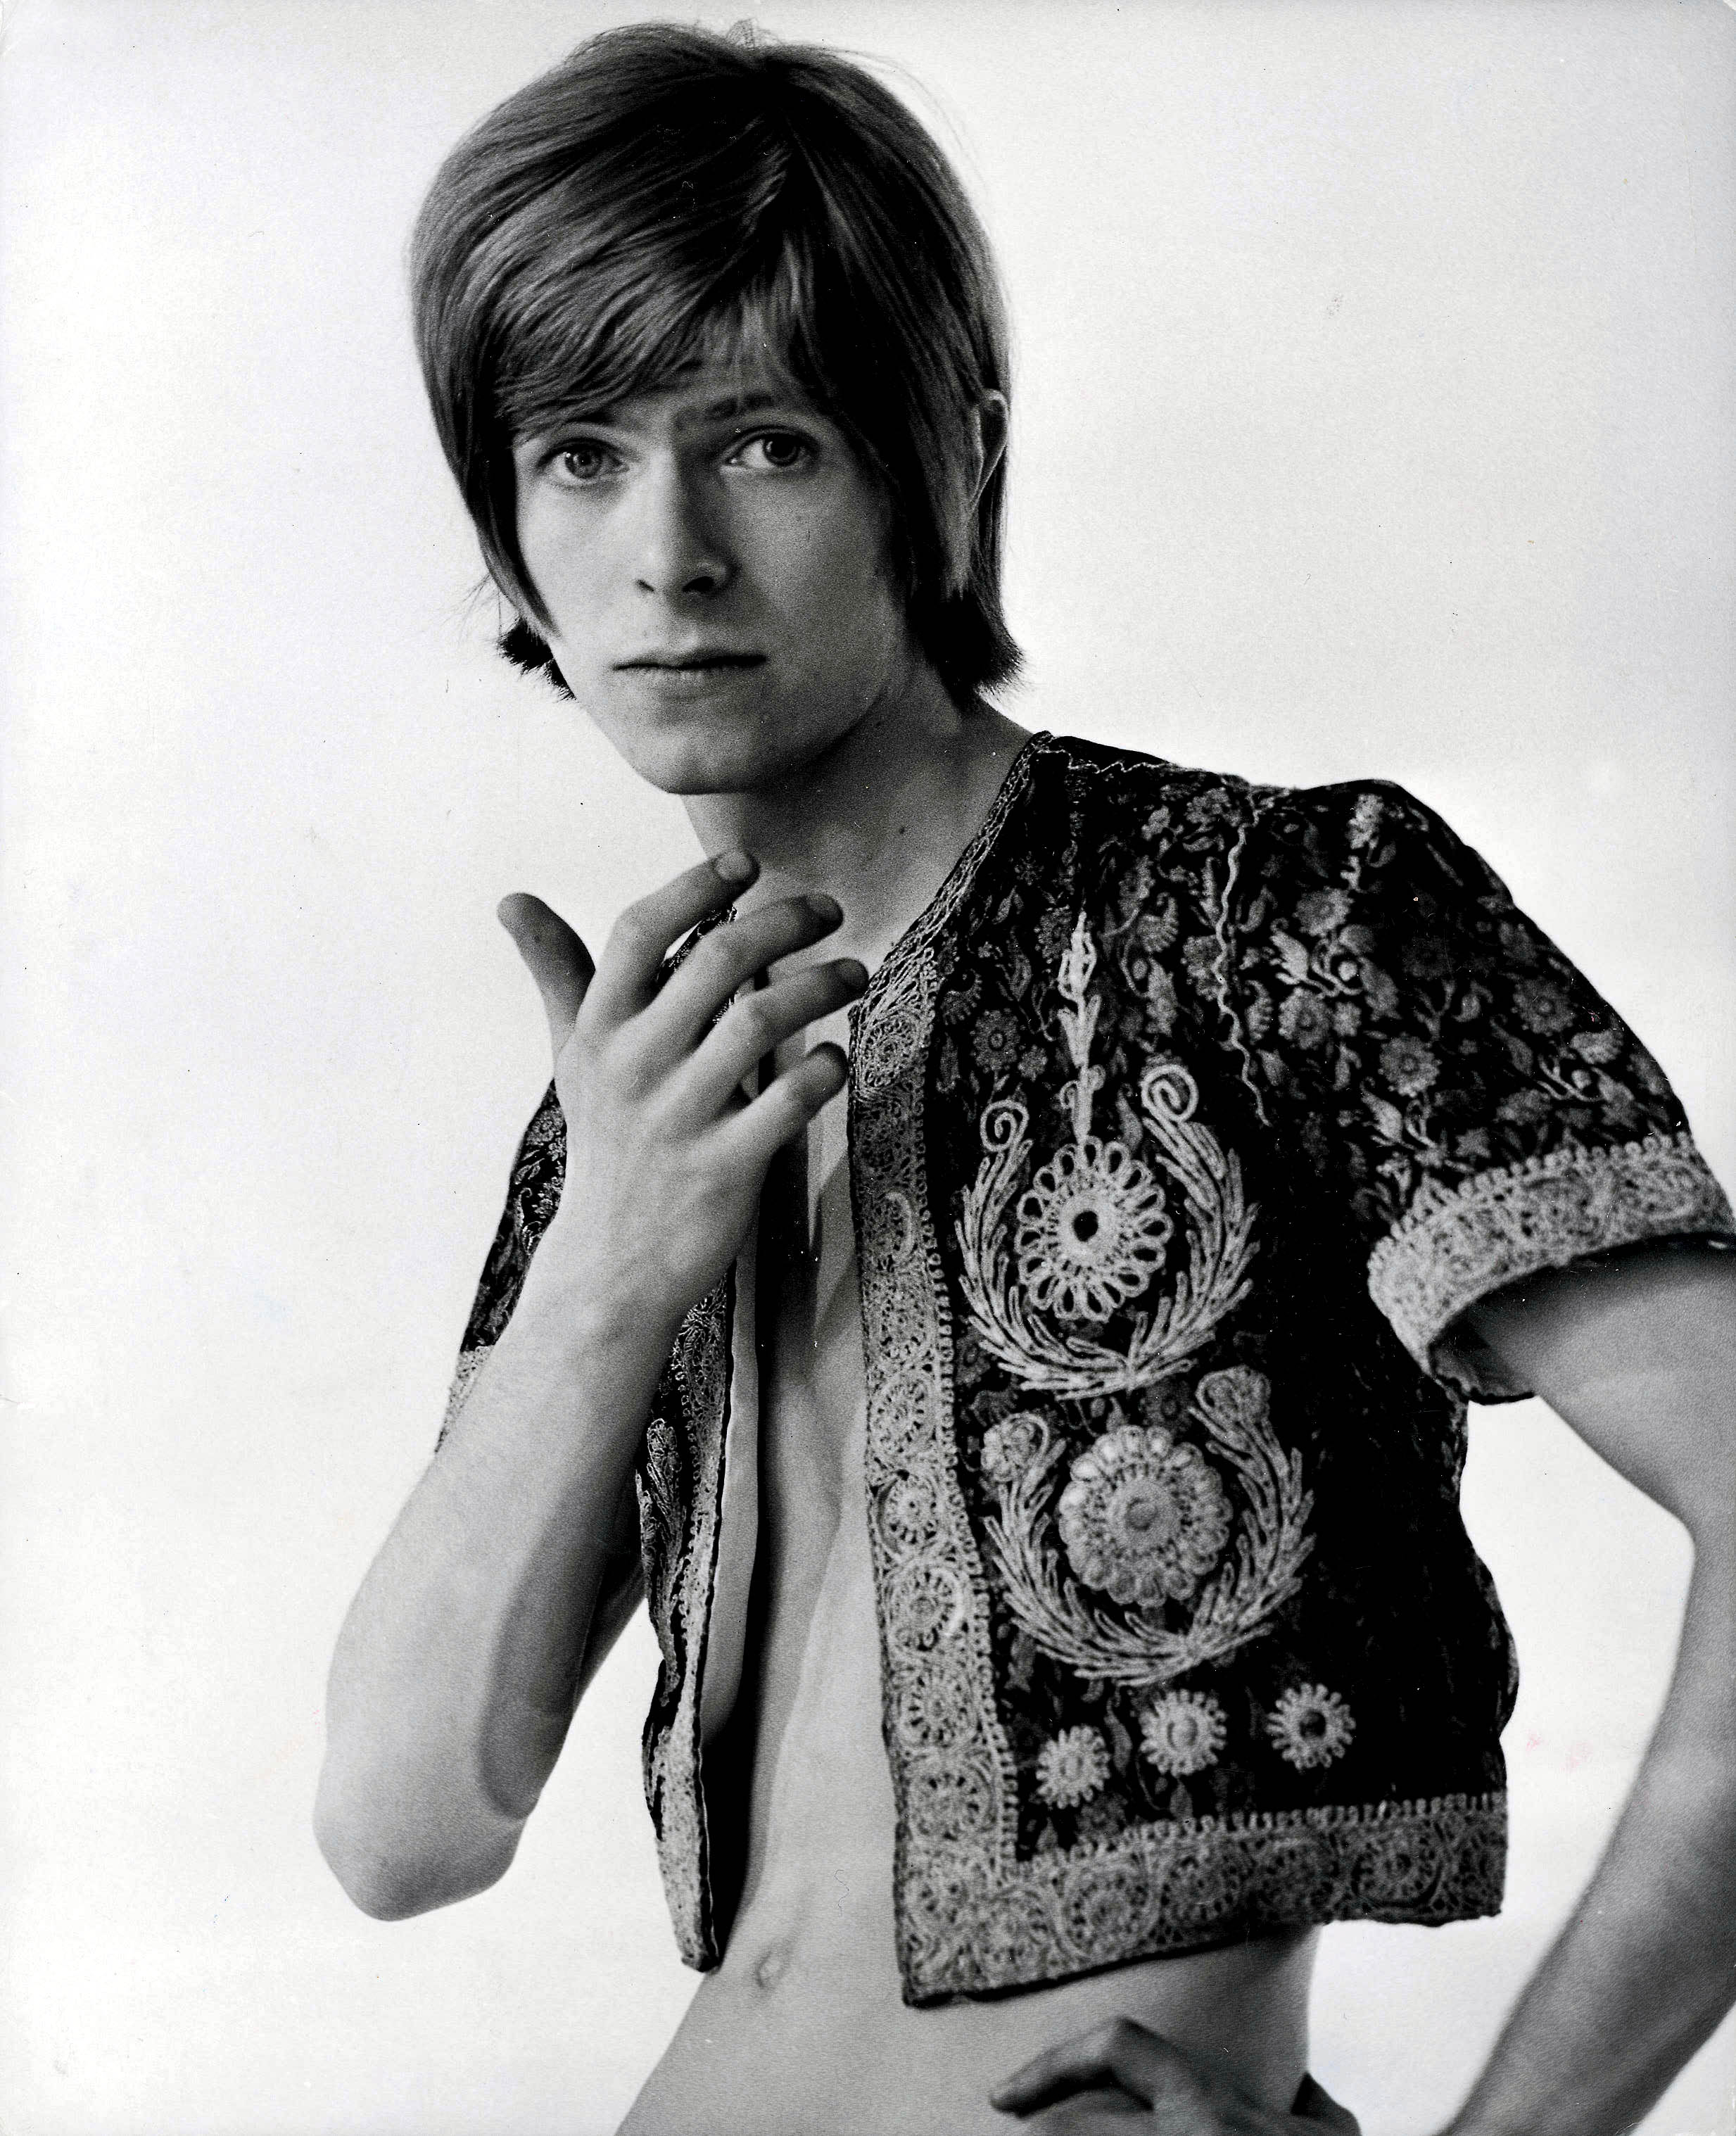 David Bowie poses for a portrait in the early 1970s . Photo by: Popperfoto/Getty Images